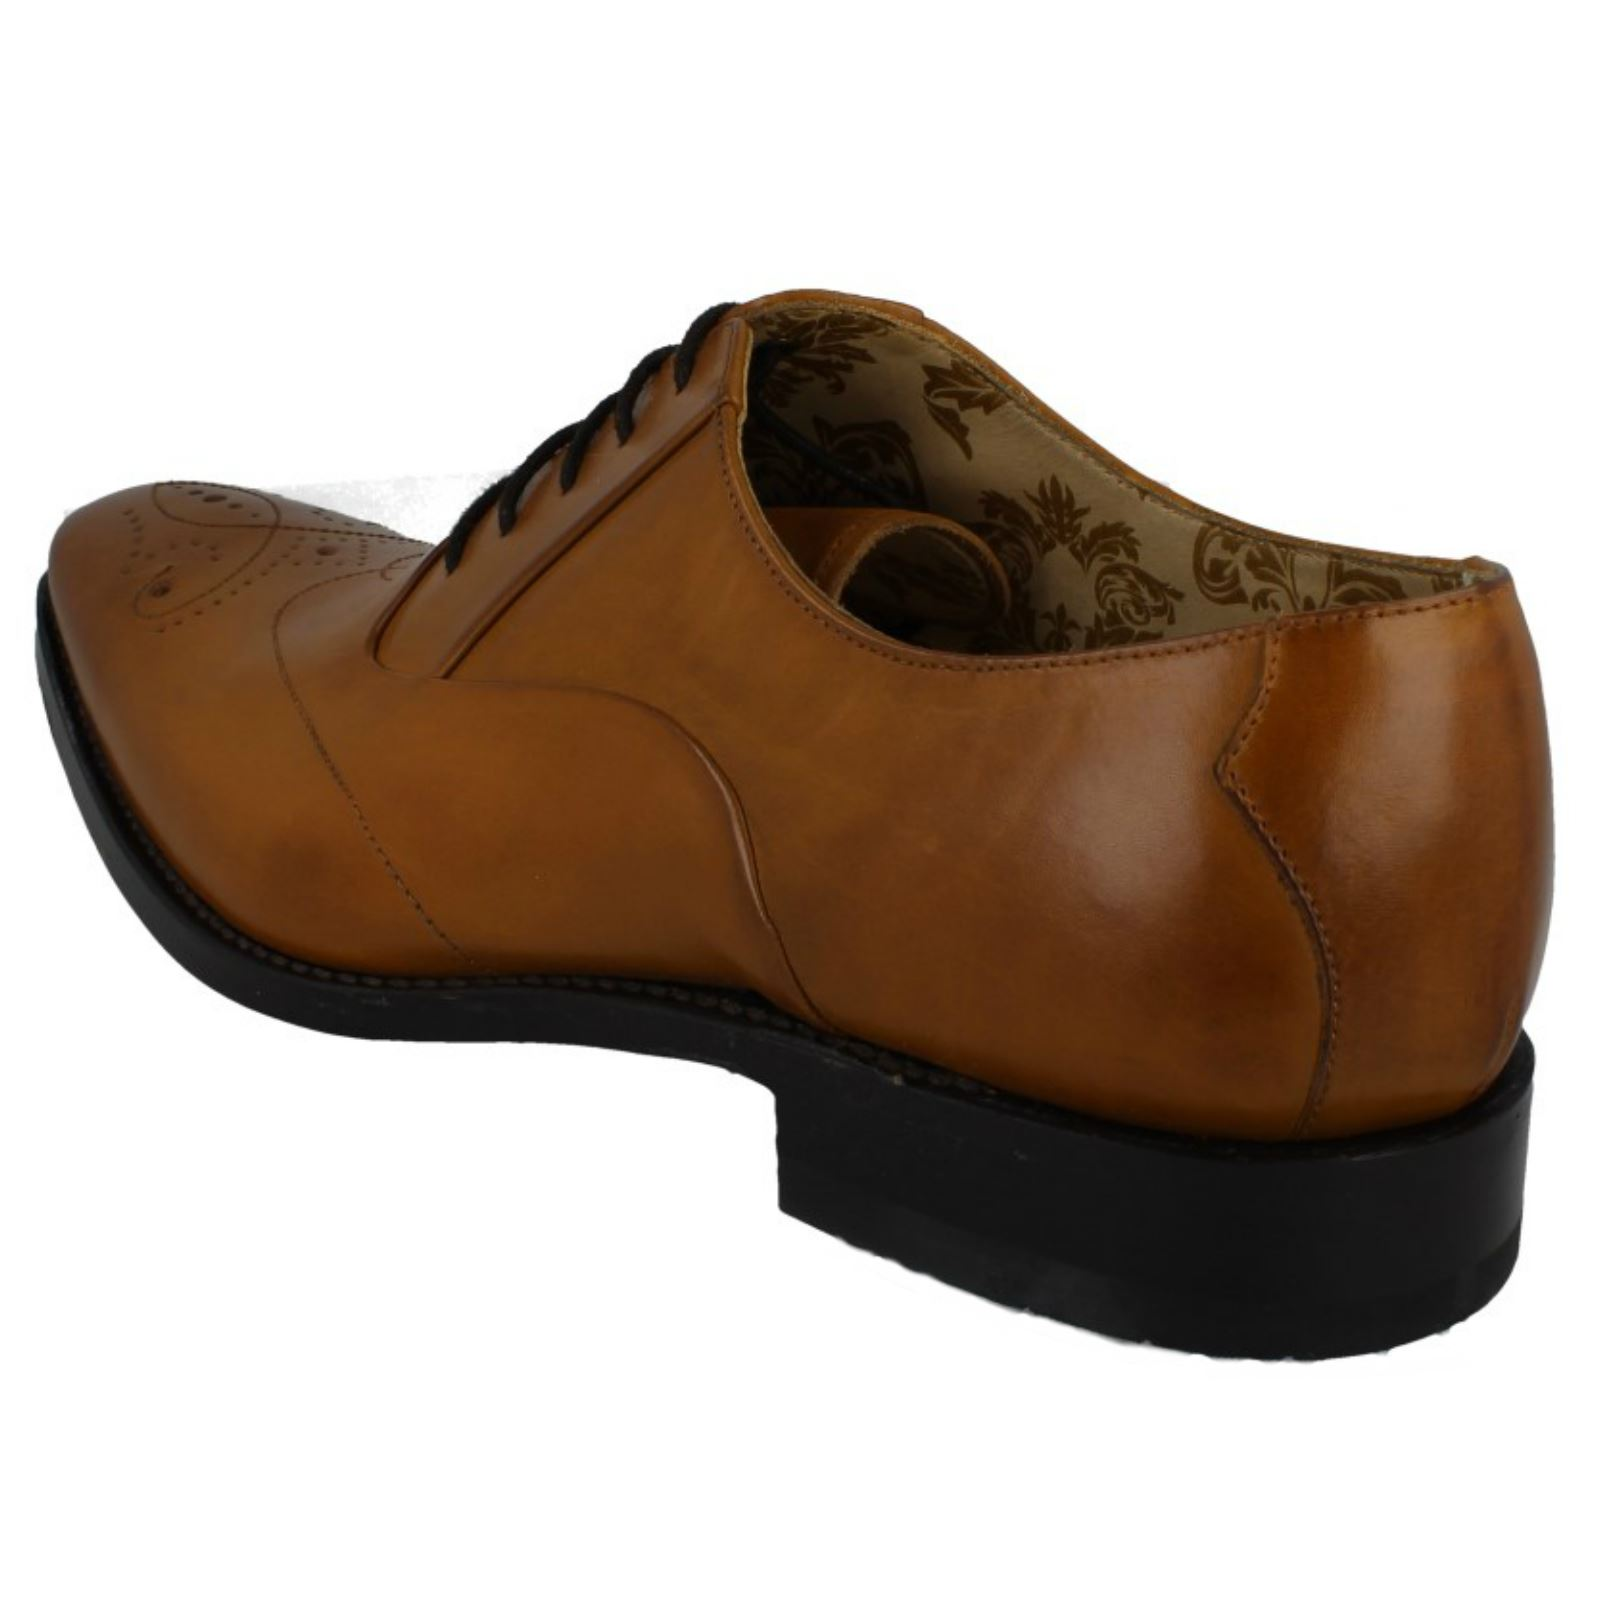 'Mens Loake' Smart Leather Leather Leather Lace Up schuhe - Gunny  5b1adf